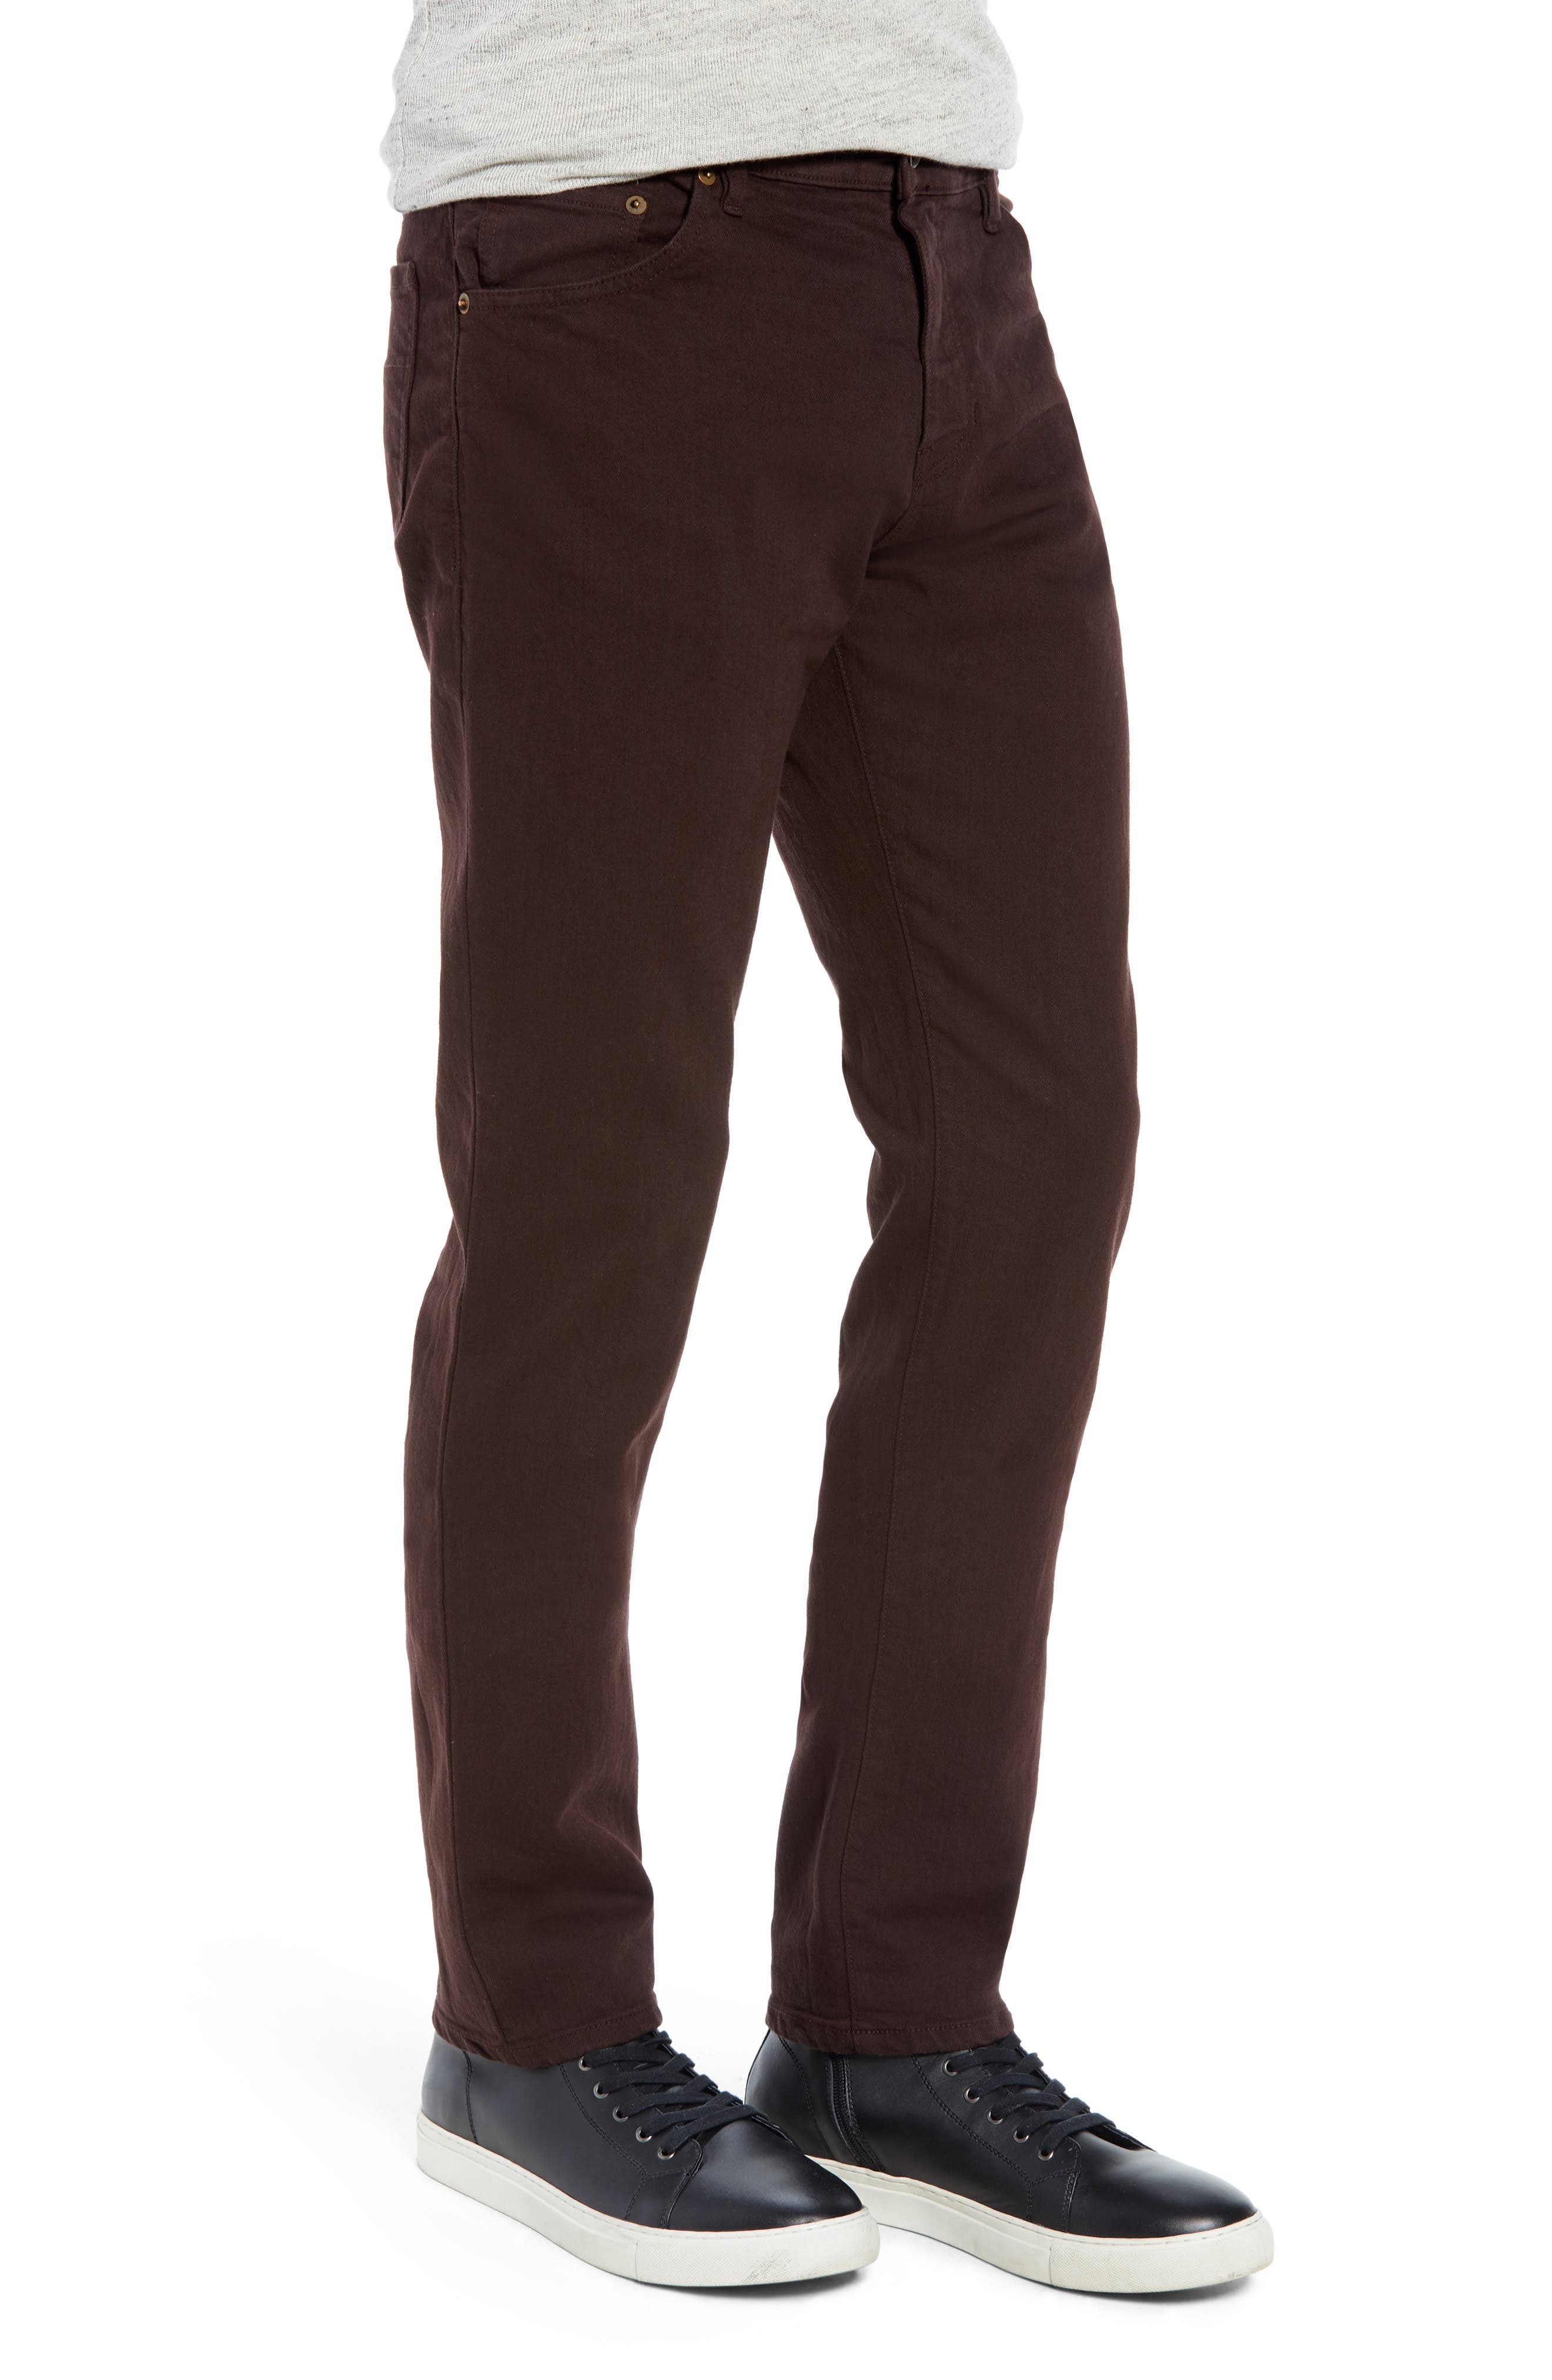 Raleight Denim Martin Skinny Fit Jeans,                             Alternate thumbnail 3, color,                             CURRANT